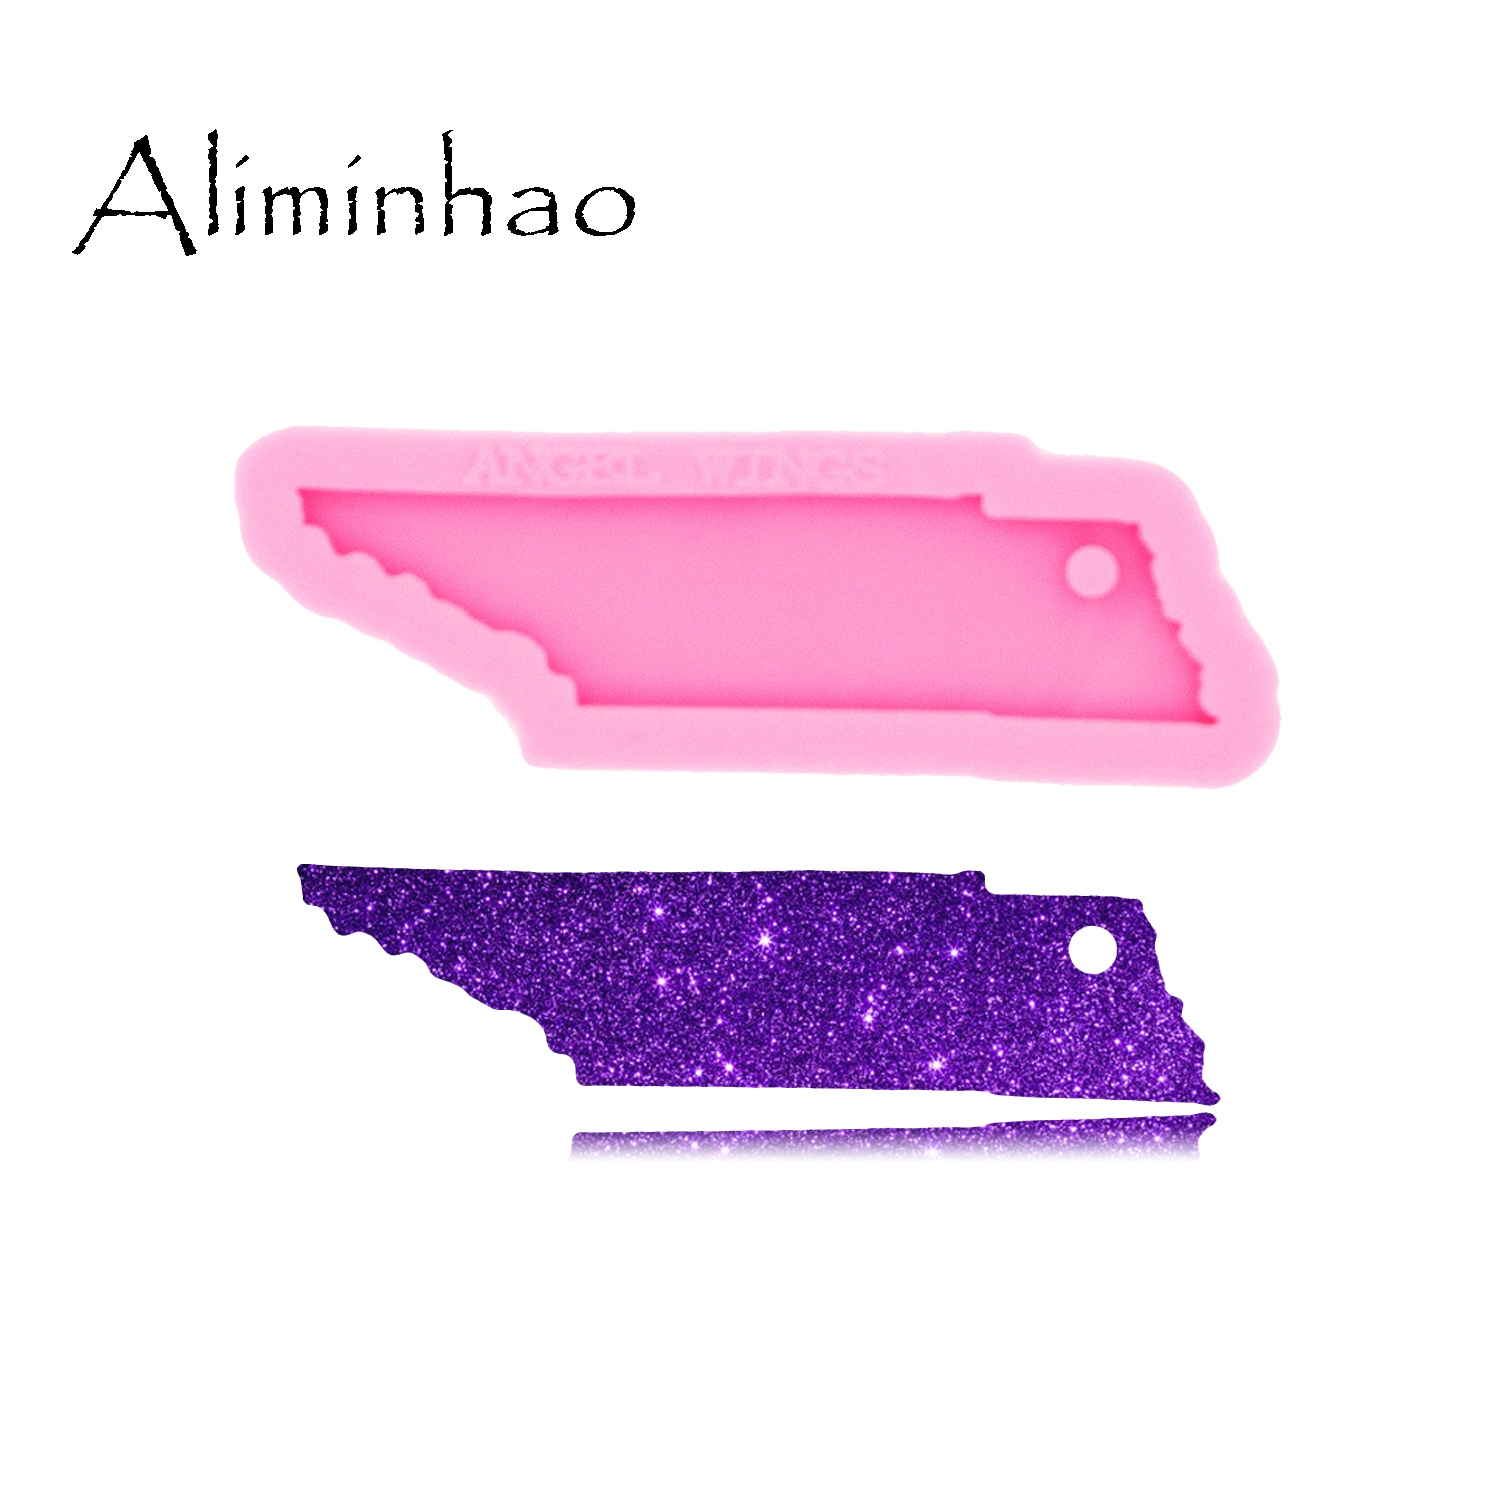 DY0231 Shiny Glossy USA State Map Tennessee Shape Silicone Keychain Molds Epoxy And Resin Craft Mould